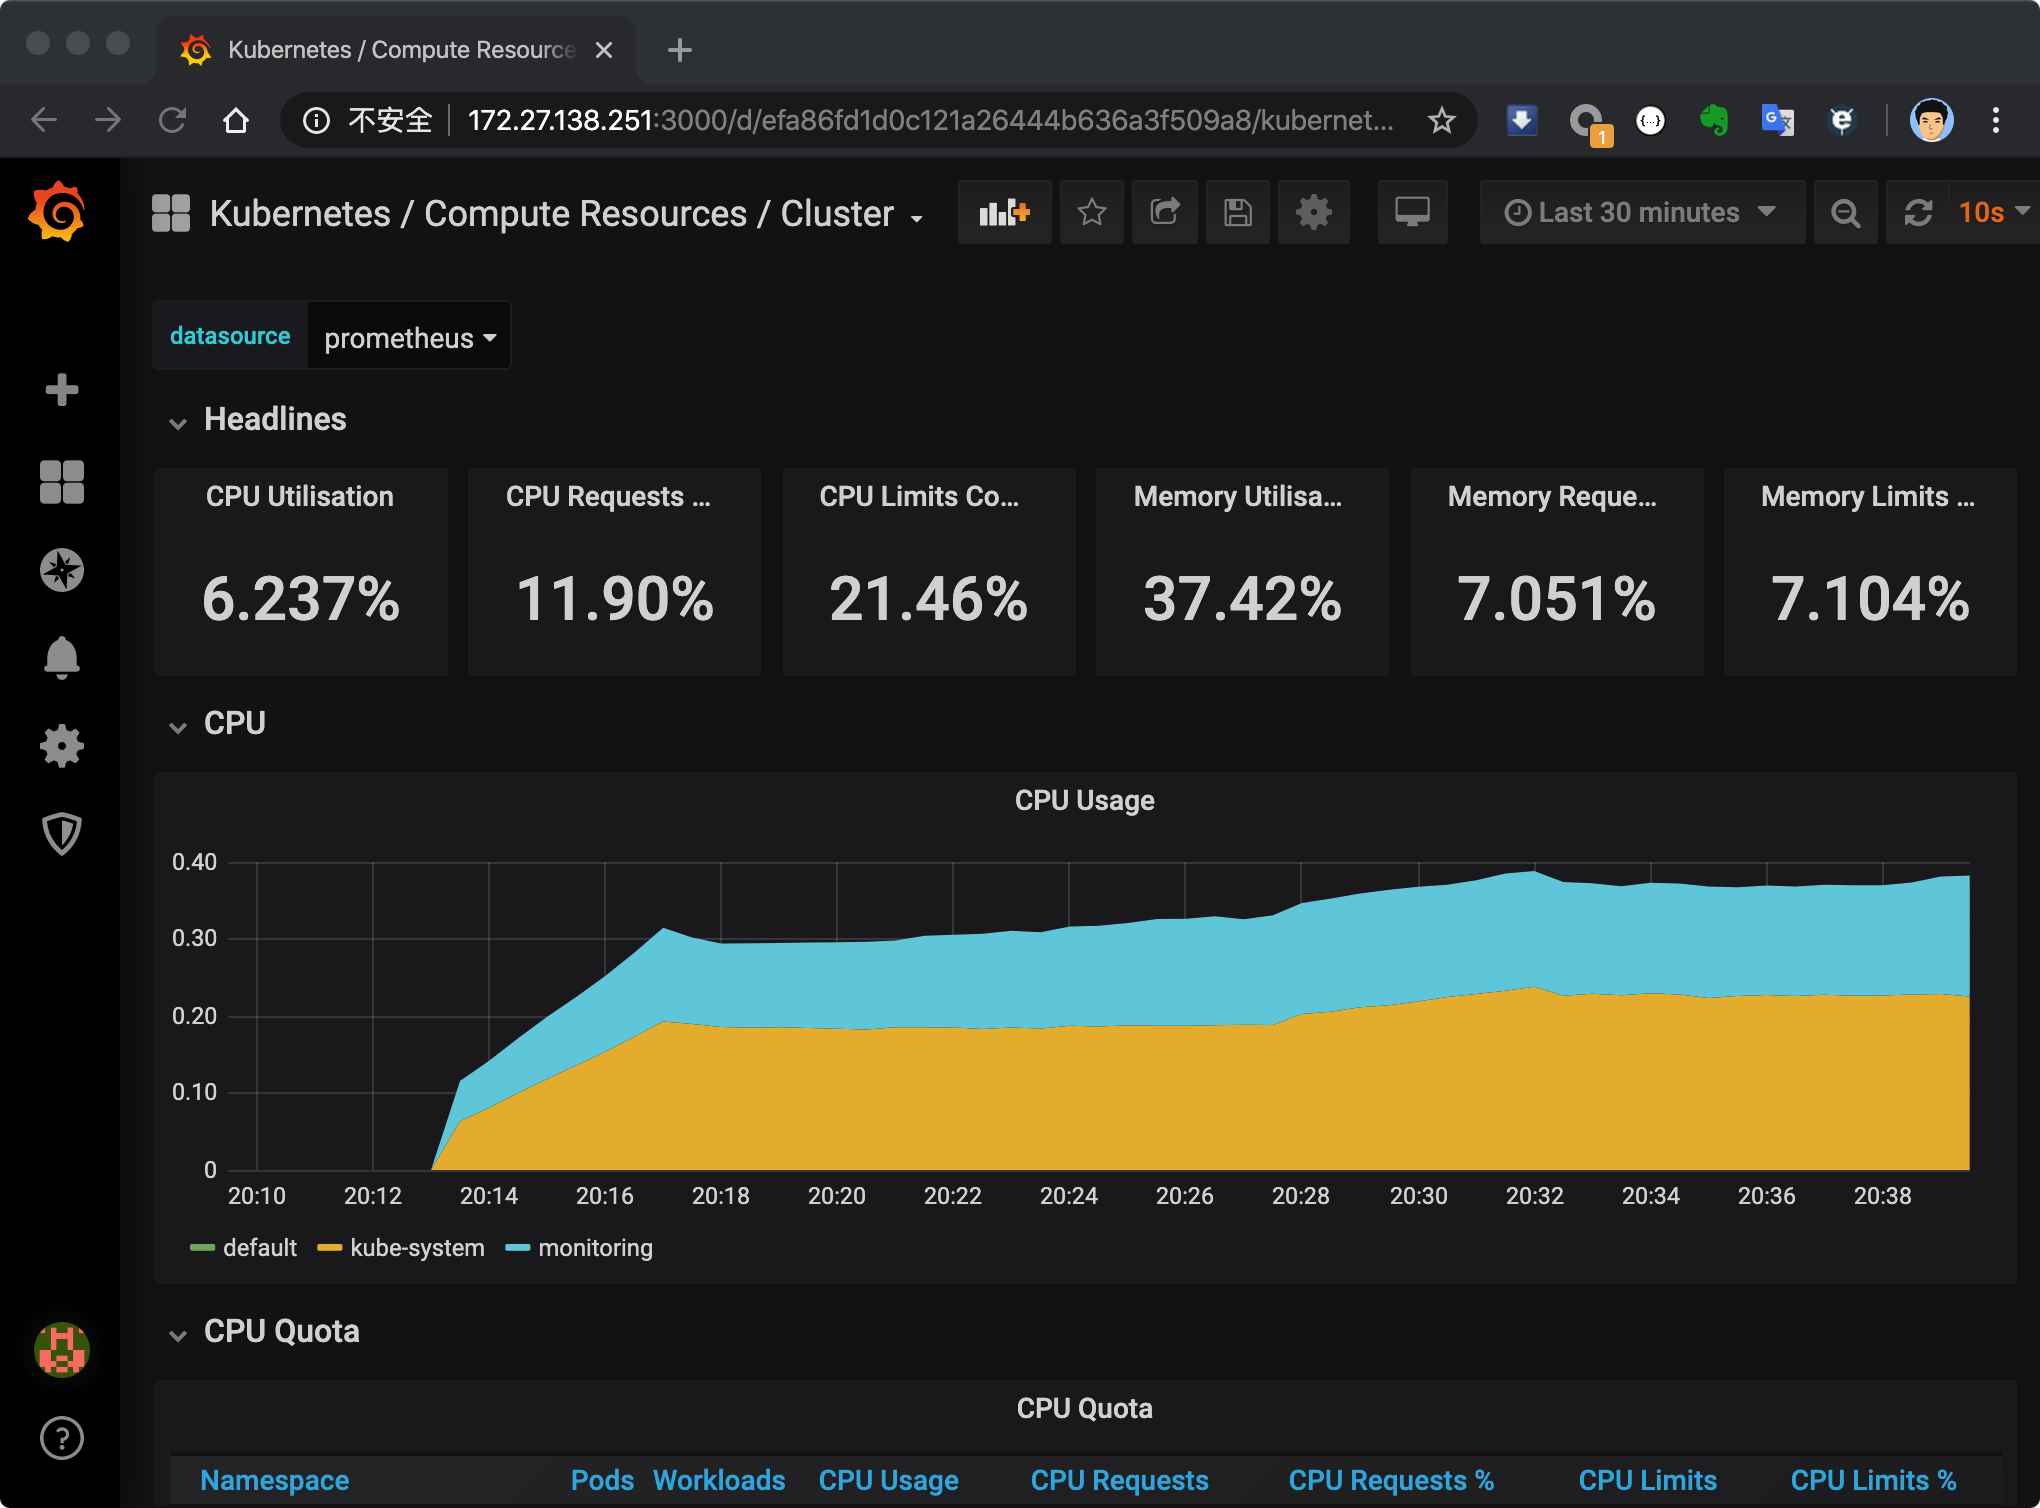 grafana_dashboard